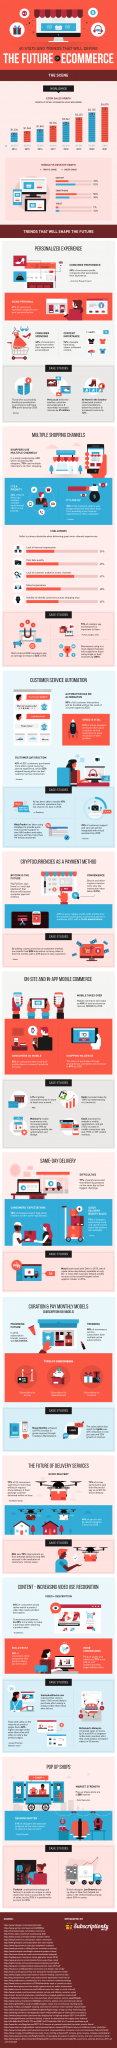 infographic on the future of ecommerce